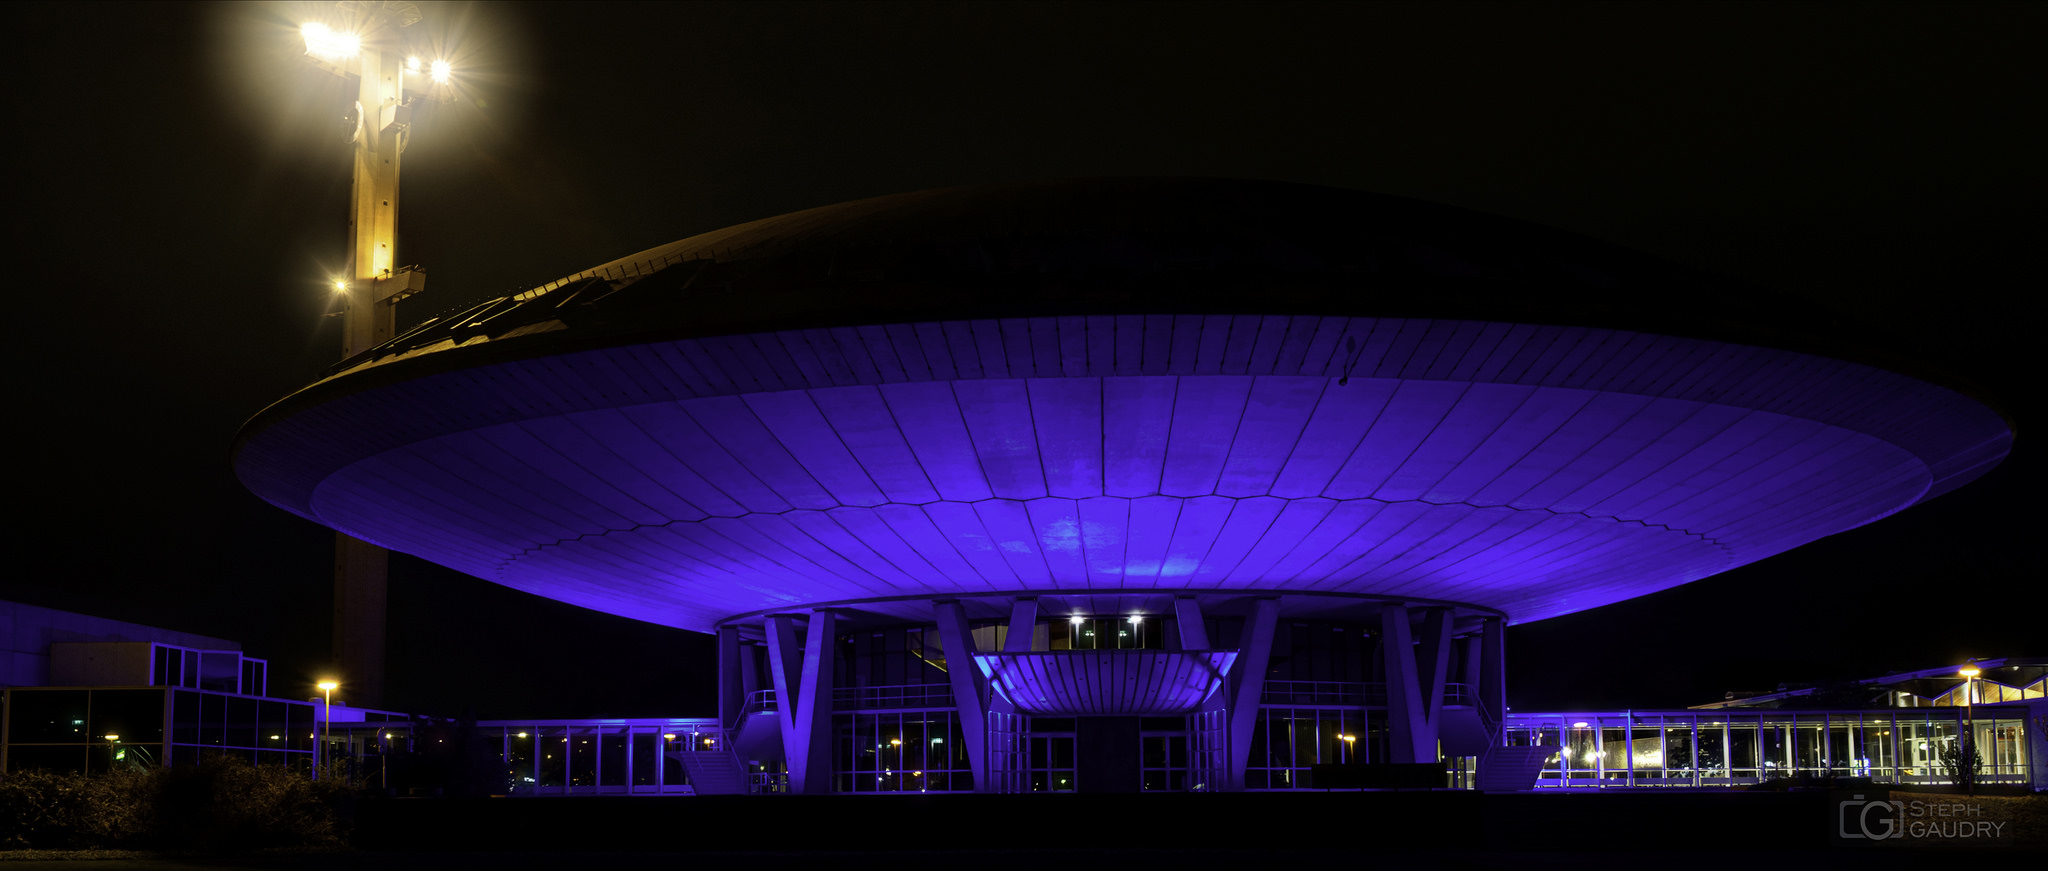 Evoluon by night